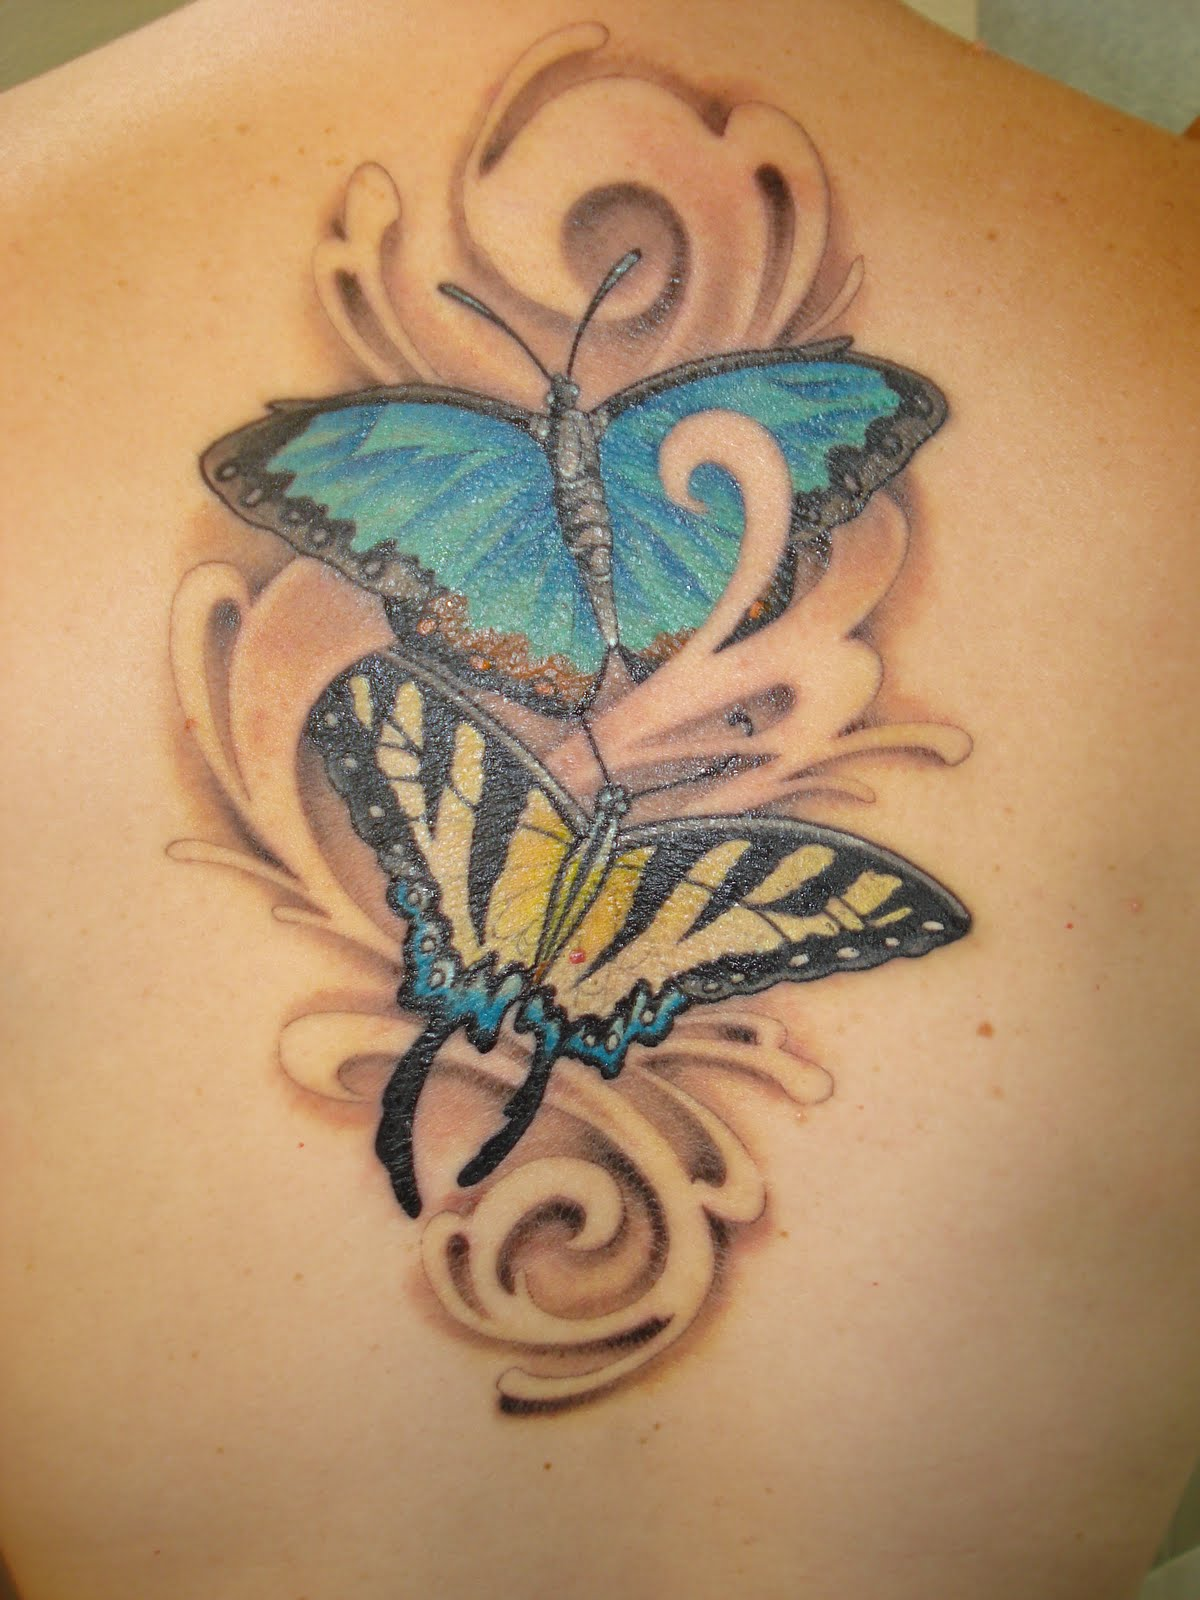 Sweetkisses shop butterfly tattoos for Butterfly tattoos gallery